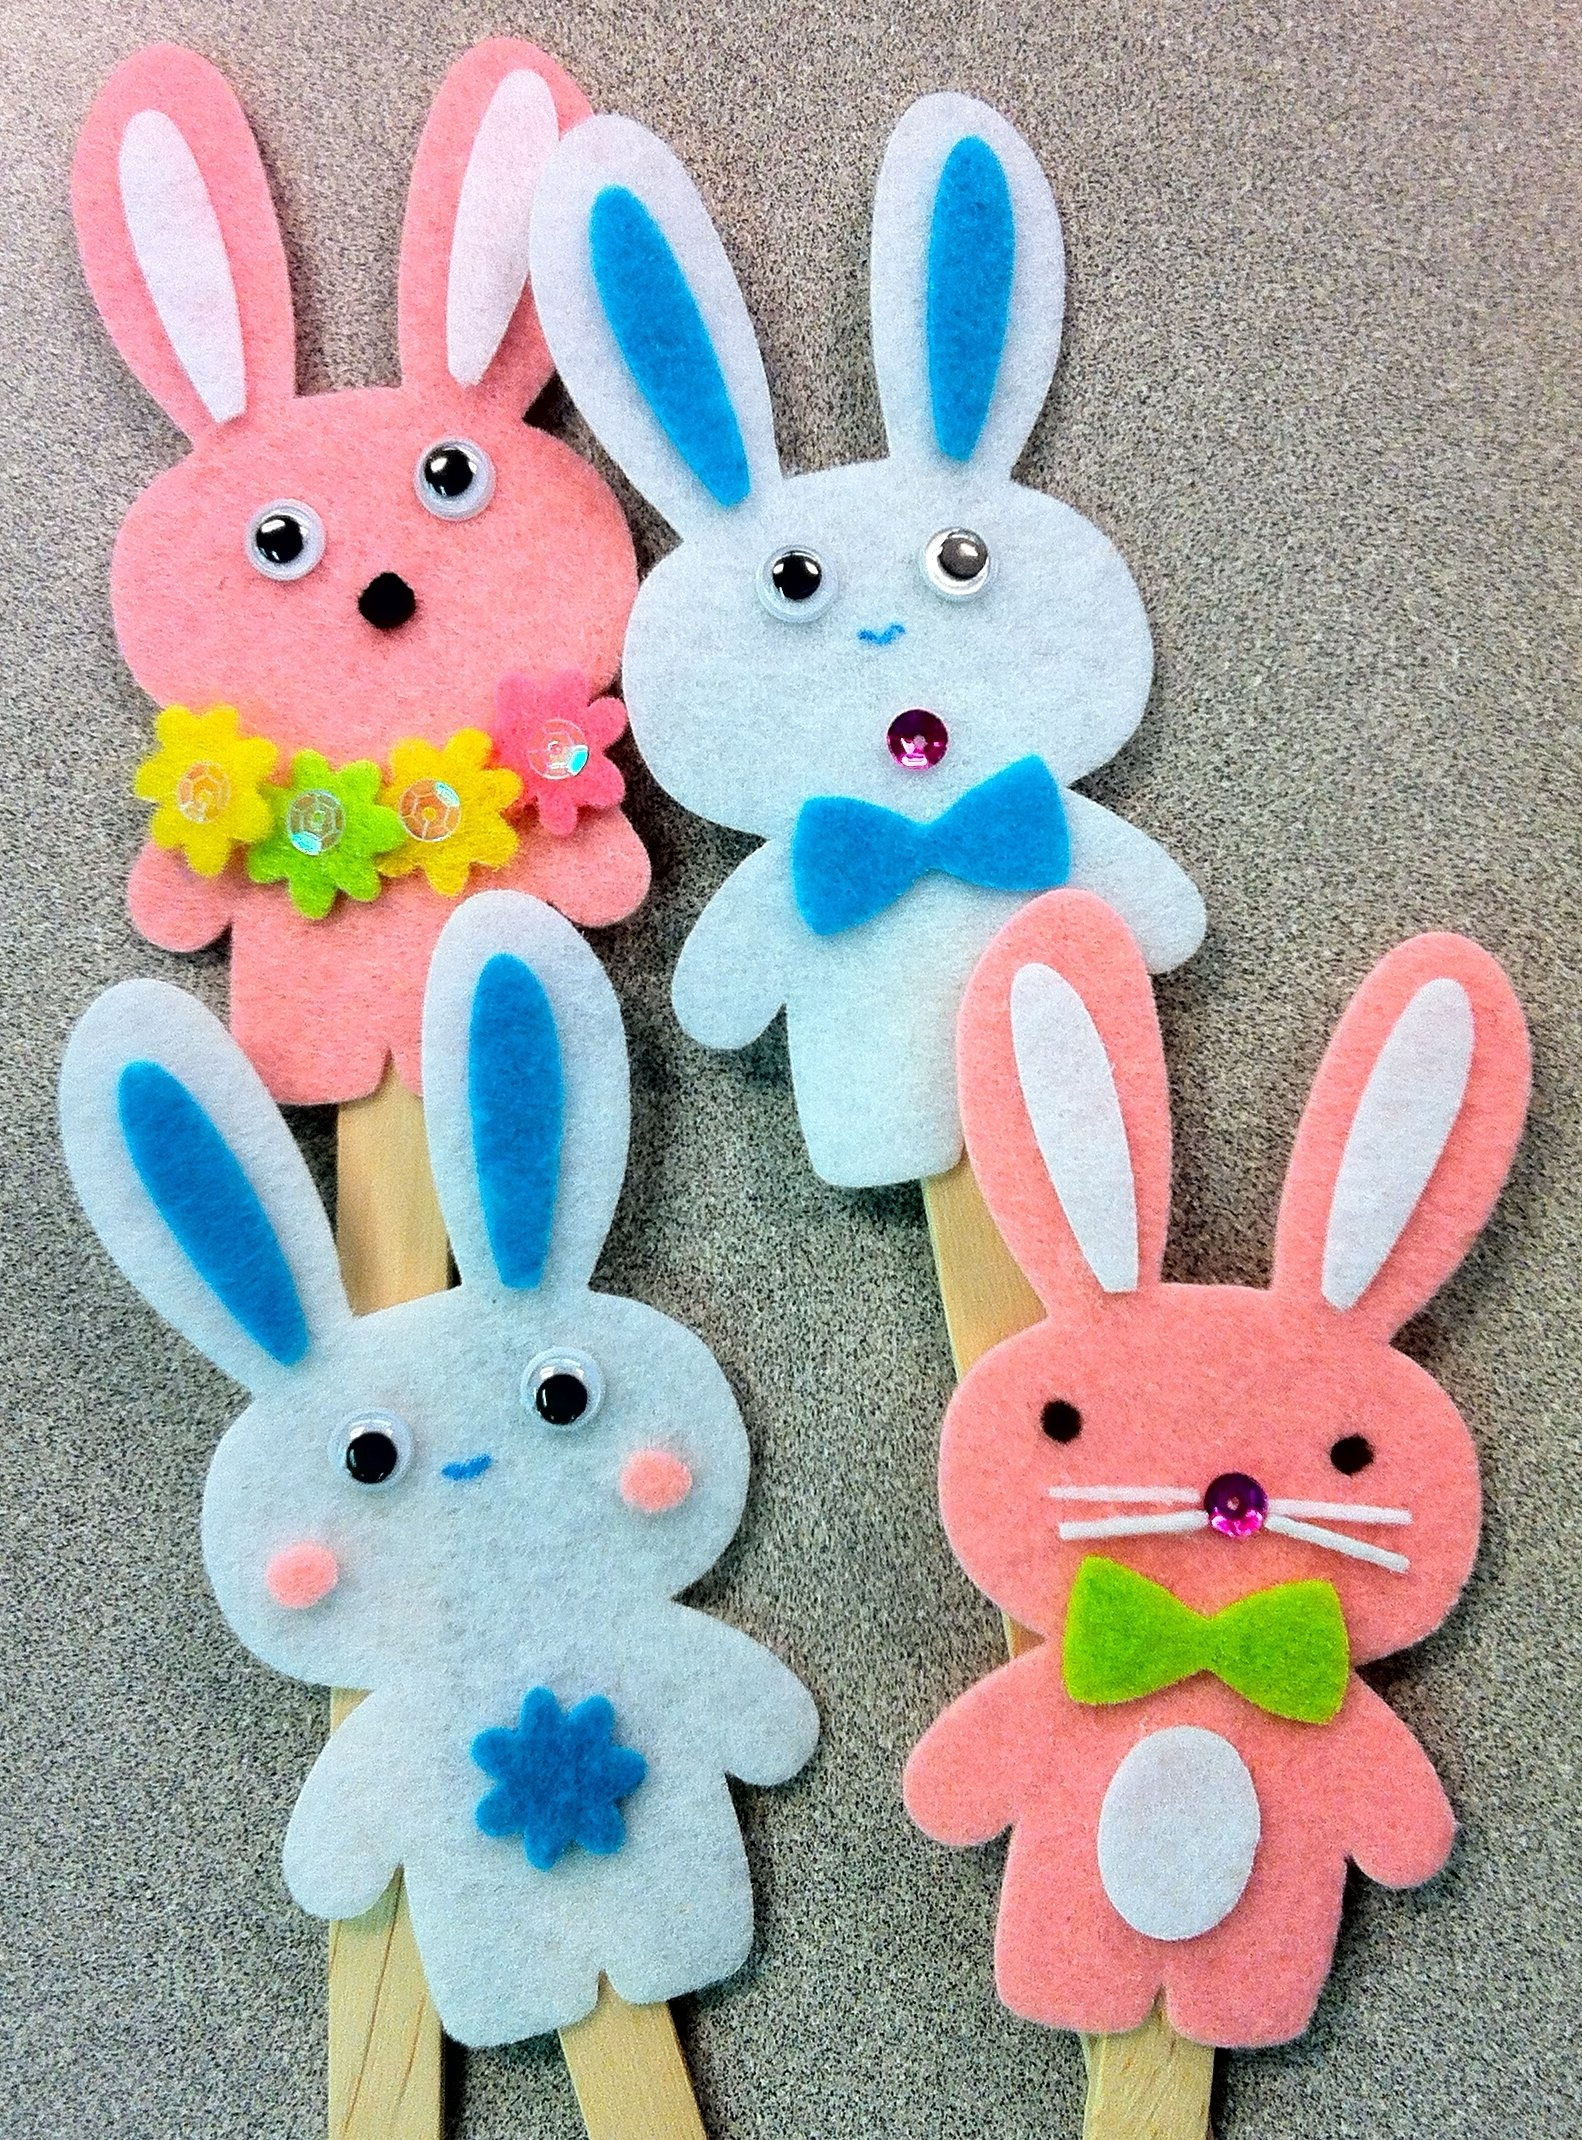 10 Stylish Easter Craft Ideas For Toddlers fun kids easter crafts ye craft ideas 2020